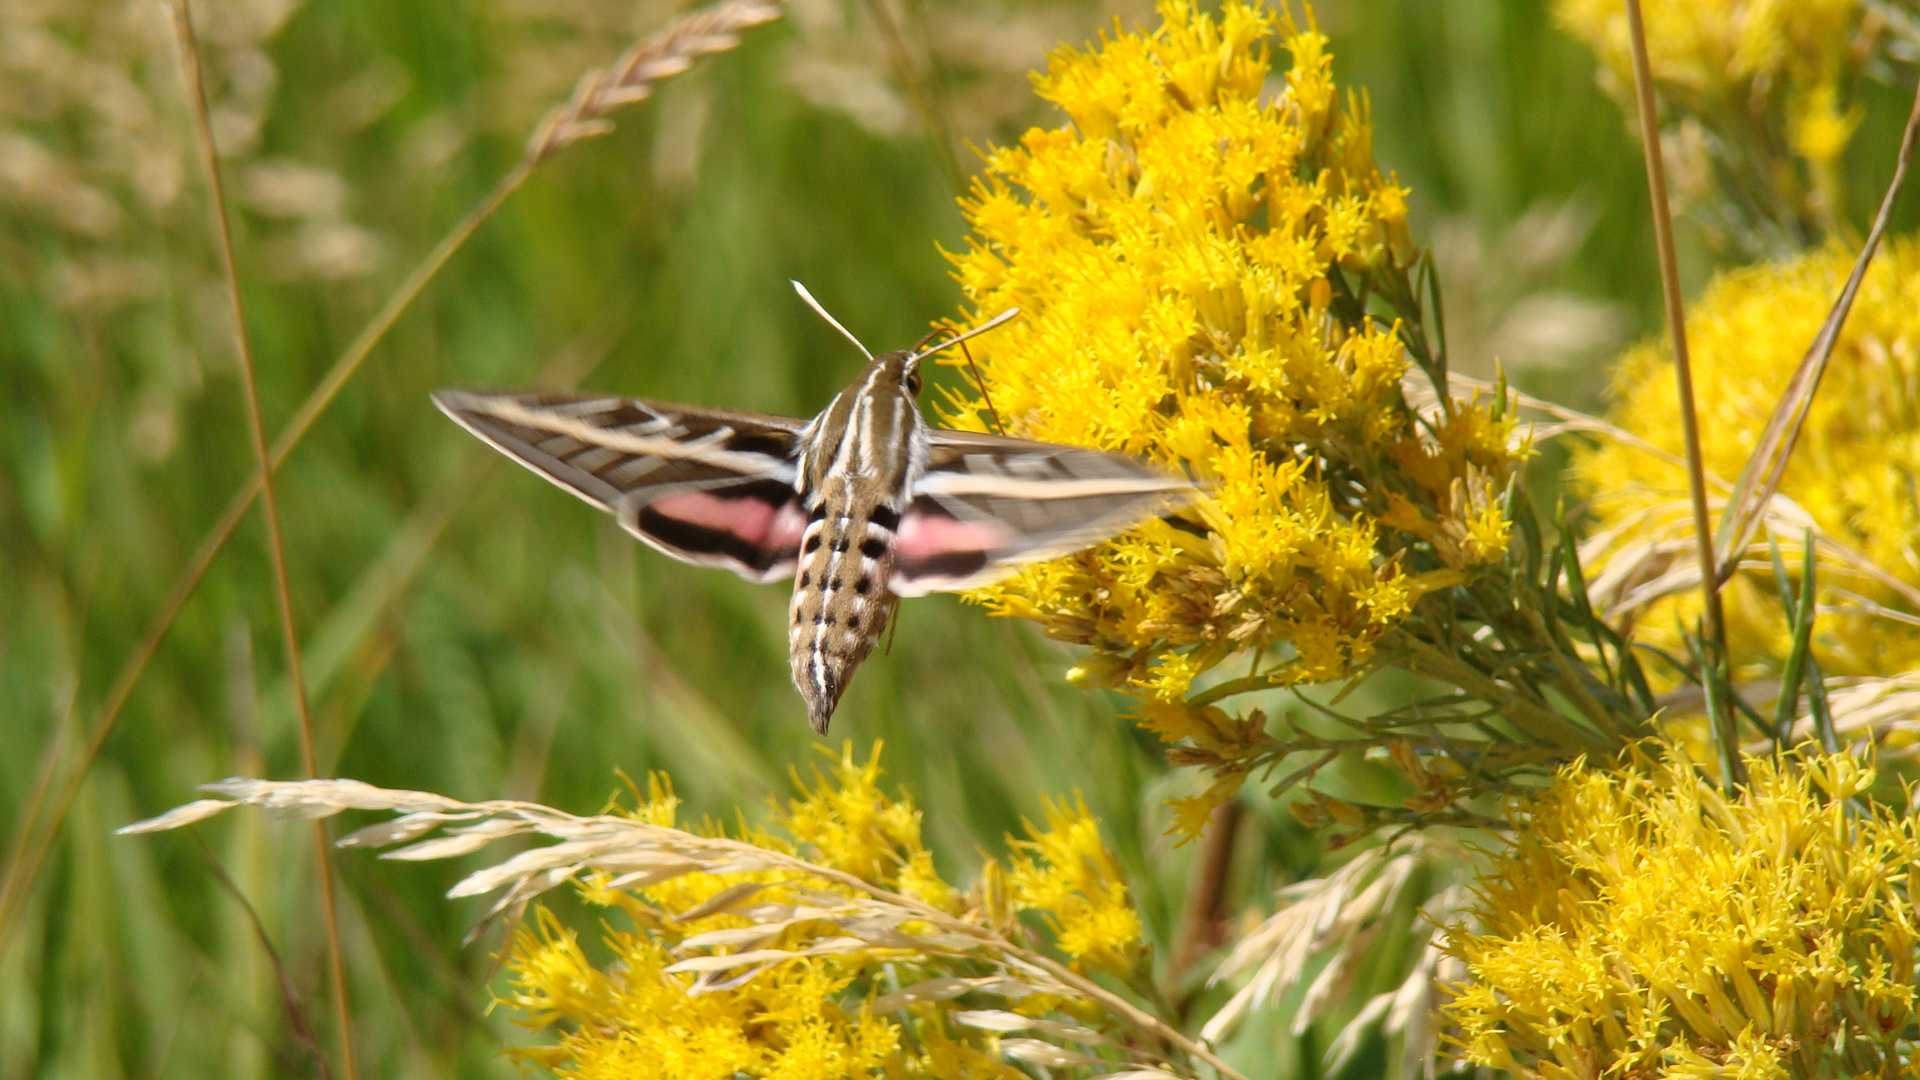 White lined sphinx moth - photo#22